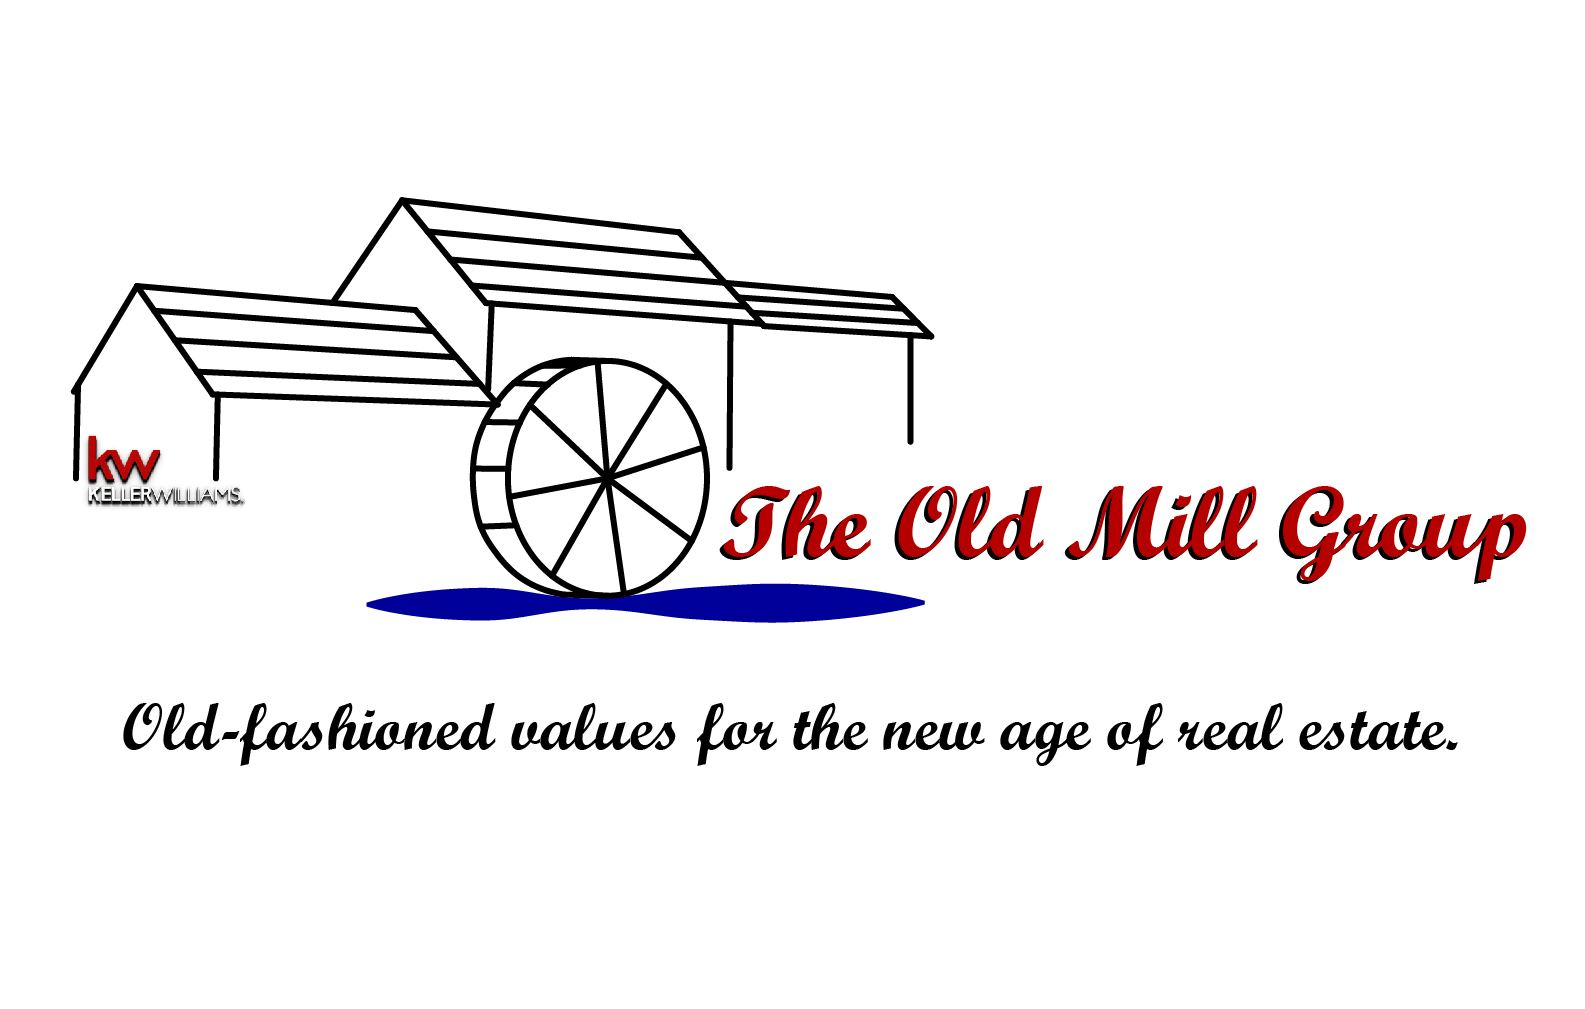 Cathy Delano - The Old Mill Group Realtor, Raleigh, NC Partner